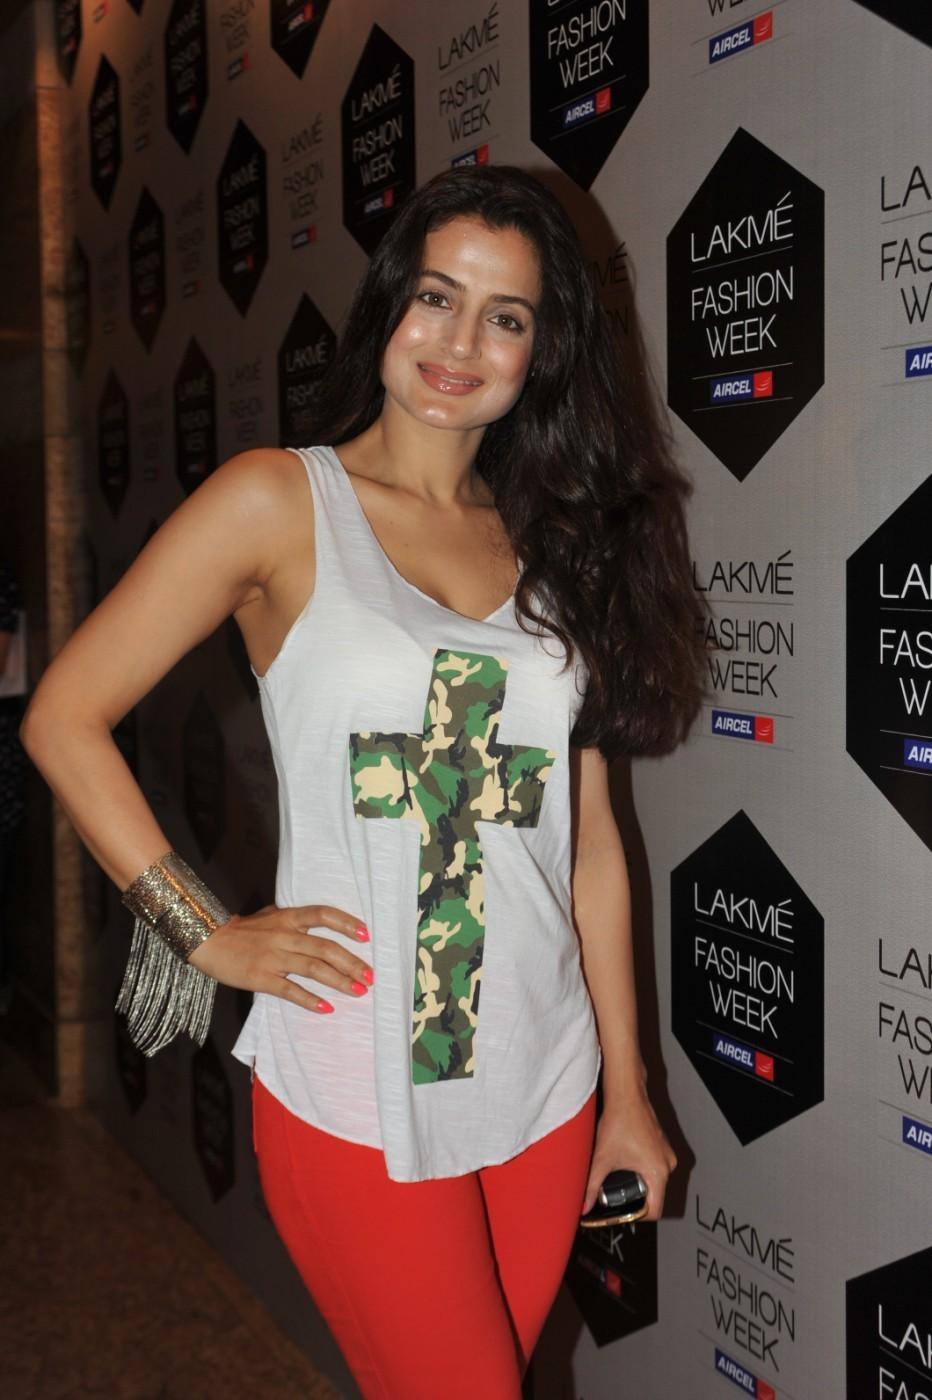 Lakme Fashion Week 2012 Day 5 Photo - Ameesha Patel Cool Look